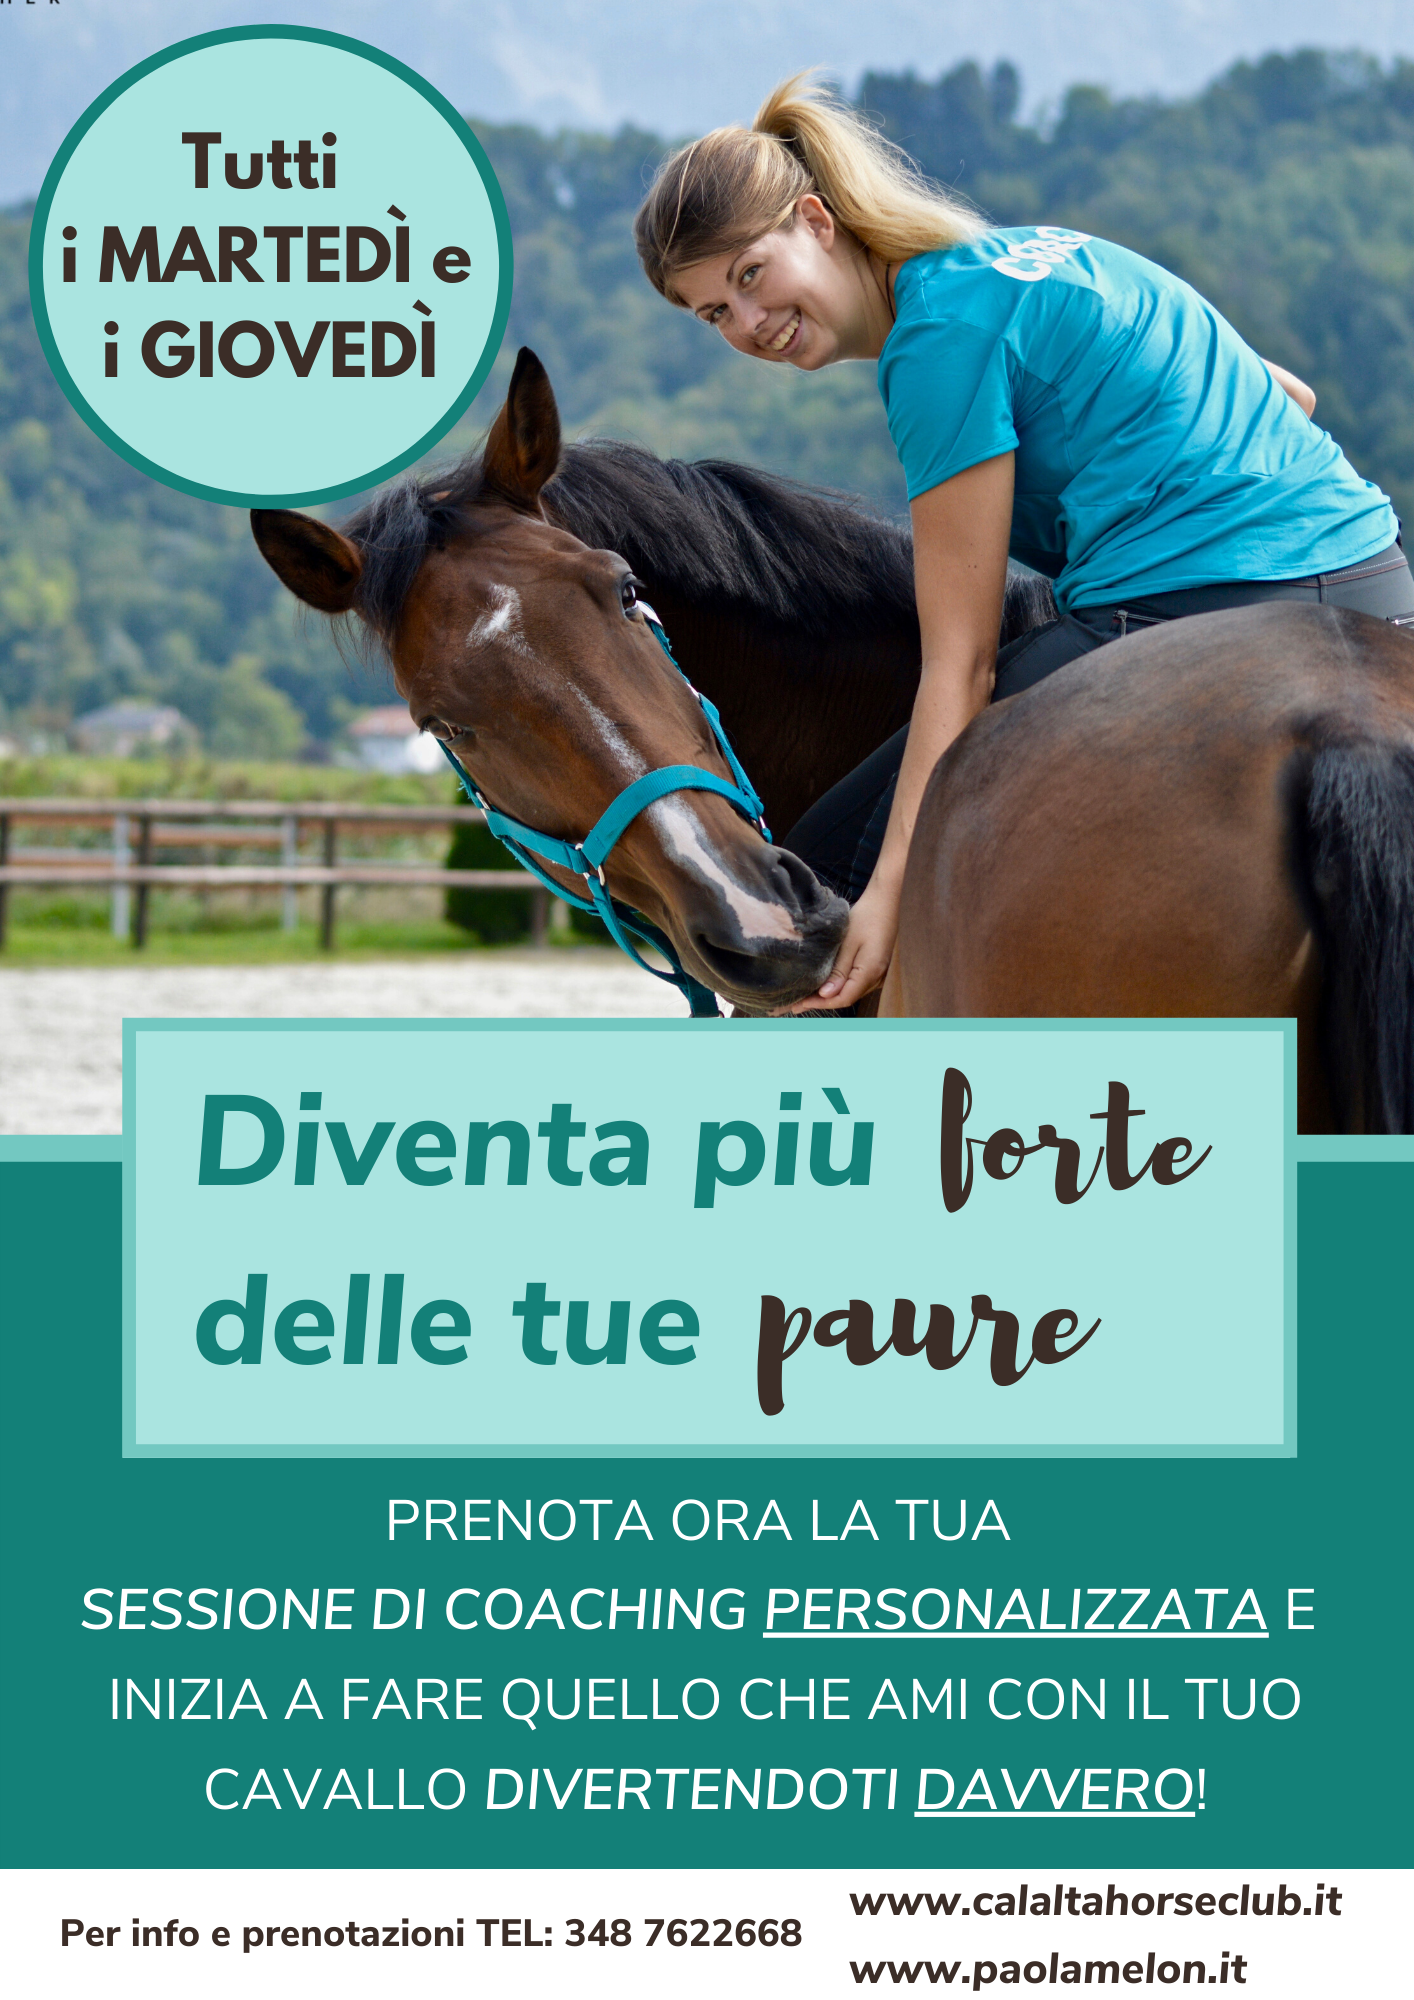 SESSIONI DI COACHING